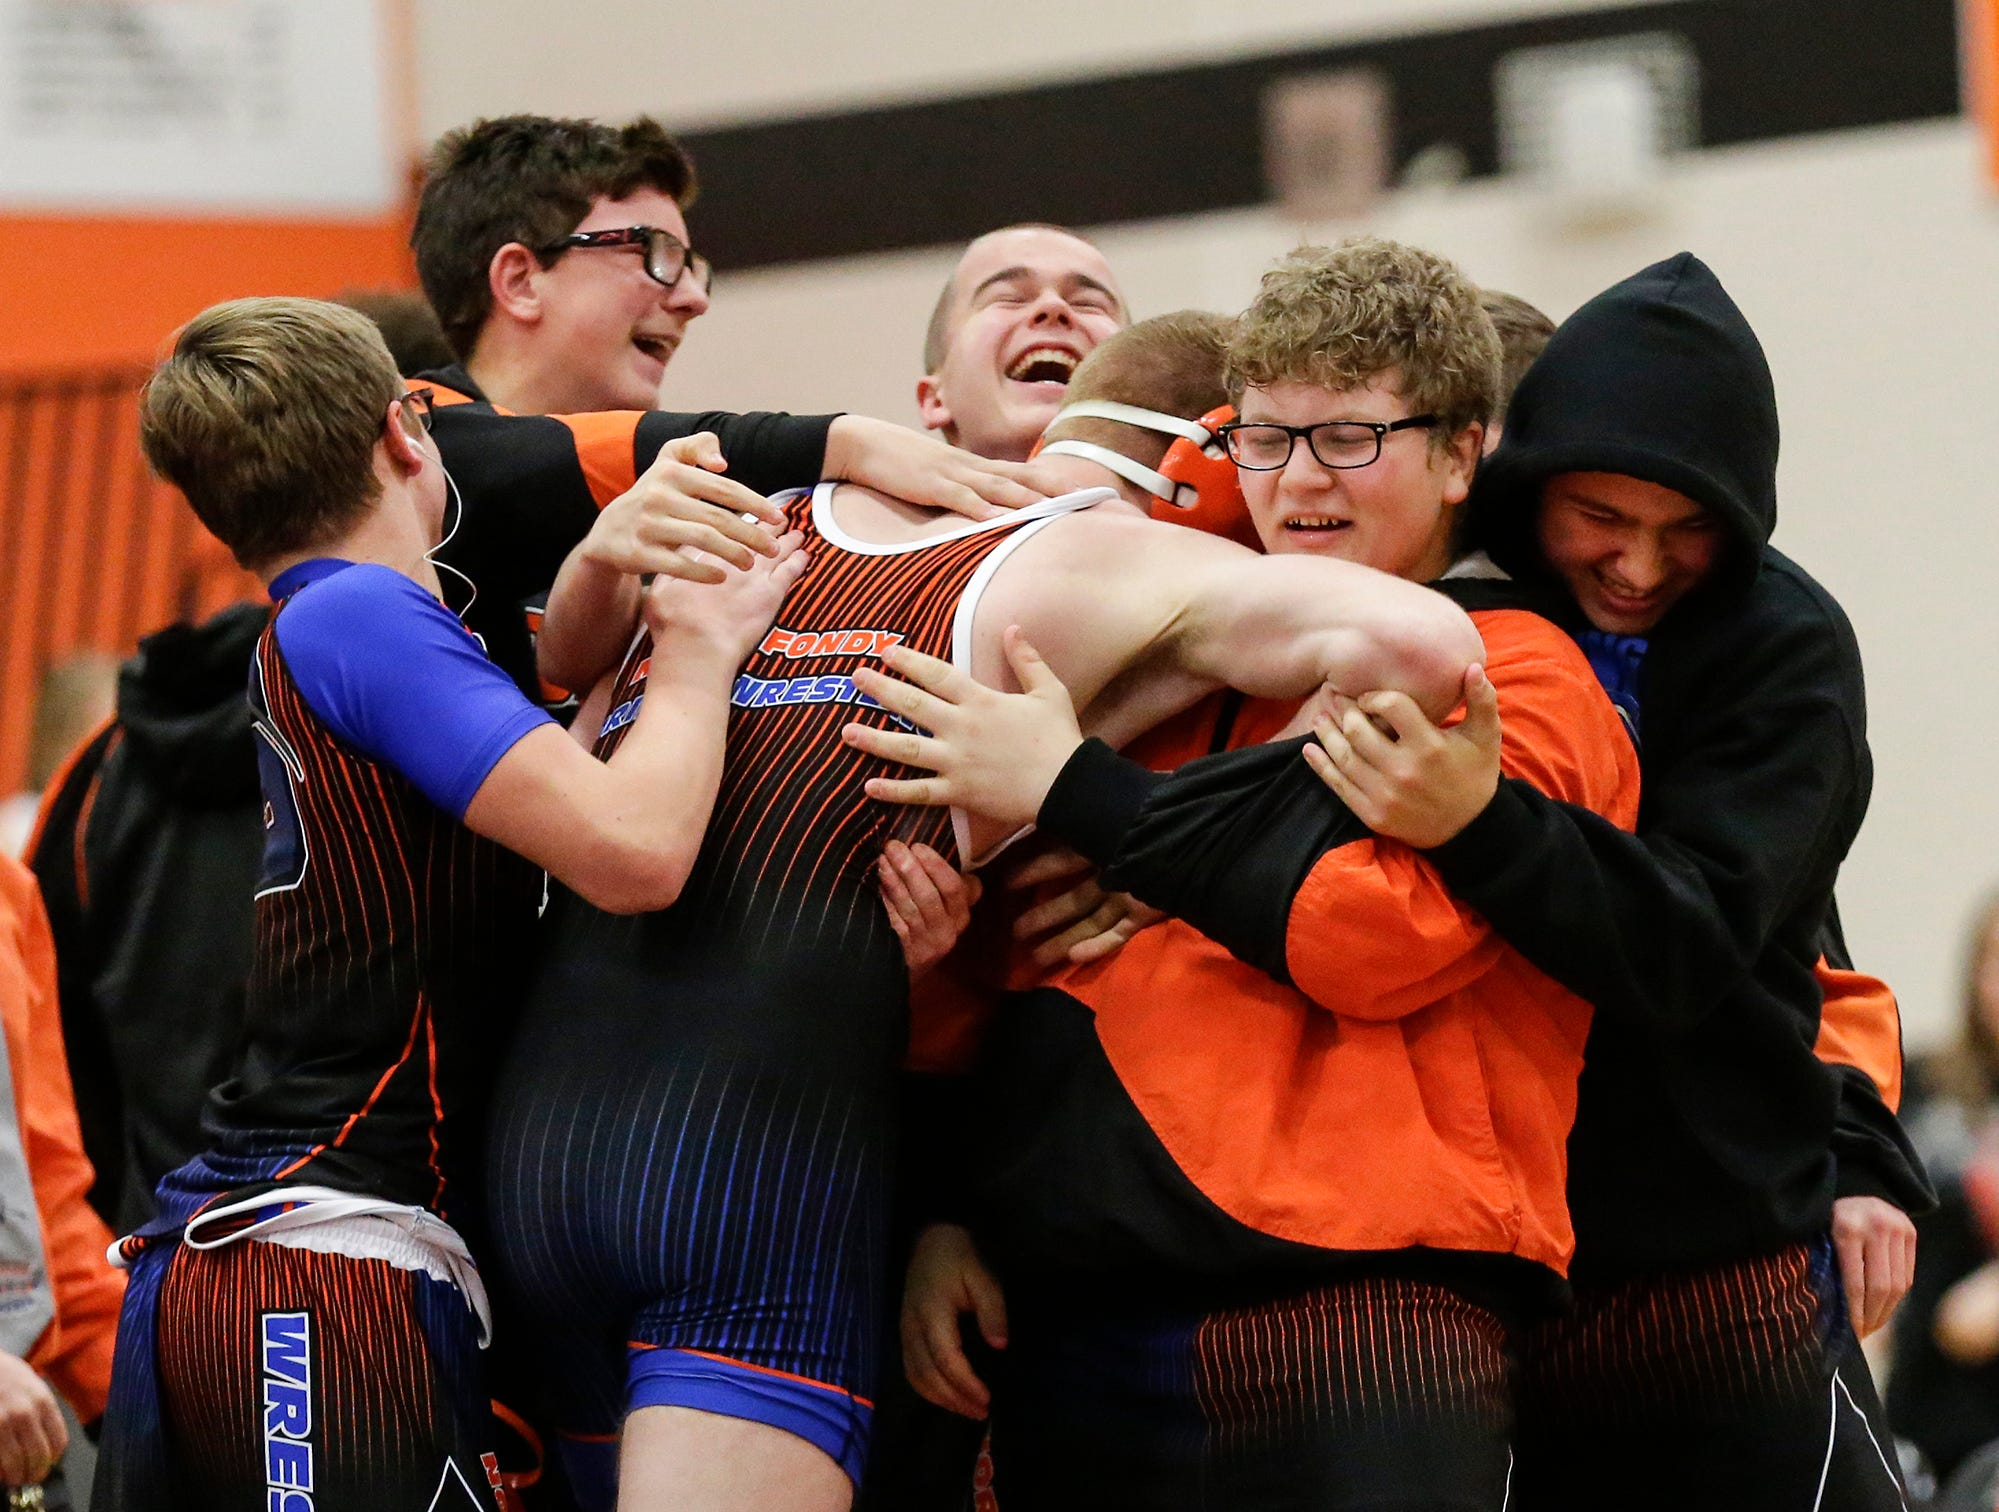 St. Mary's Springs Academy/North Fond du Lac High School wrestlers congratulate Carson Reitz after he pinned Lomira High School's Hunter Feucht during their 170 pound weight class match in North Fond du Lac. Reitz won the match by a pin and Springs/North Fond du Lac won the meet 48-28. Doug Raflik/USA TODAY NETWORK-Wisconsin